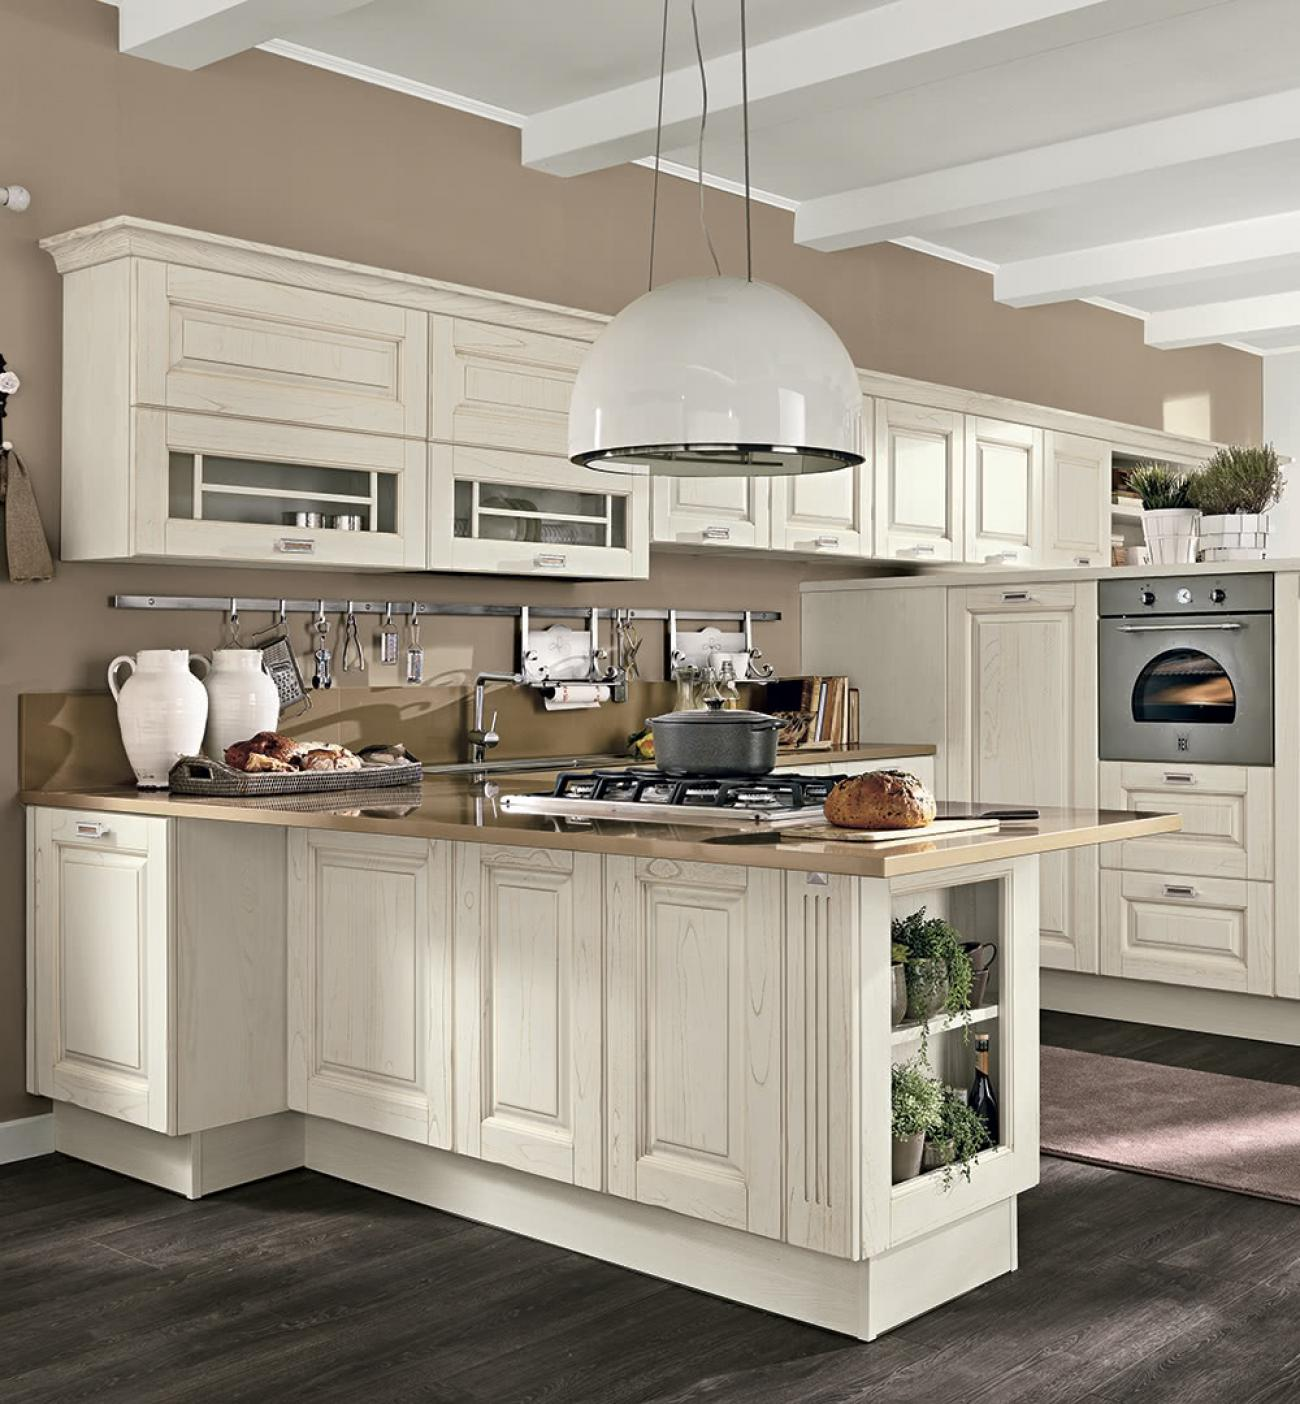 Classic Kitchens - Laura - 05